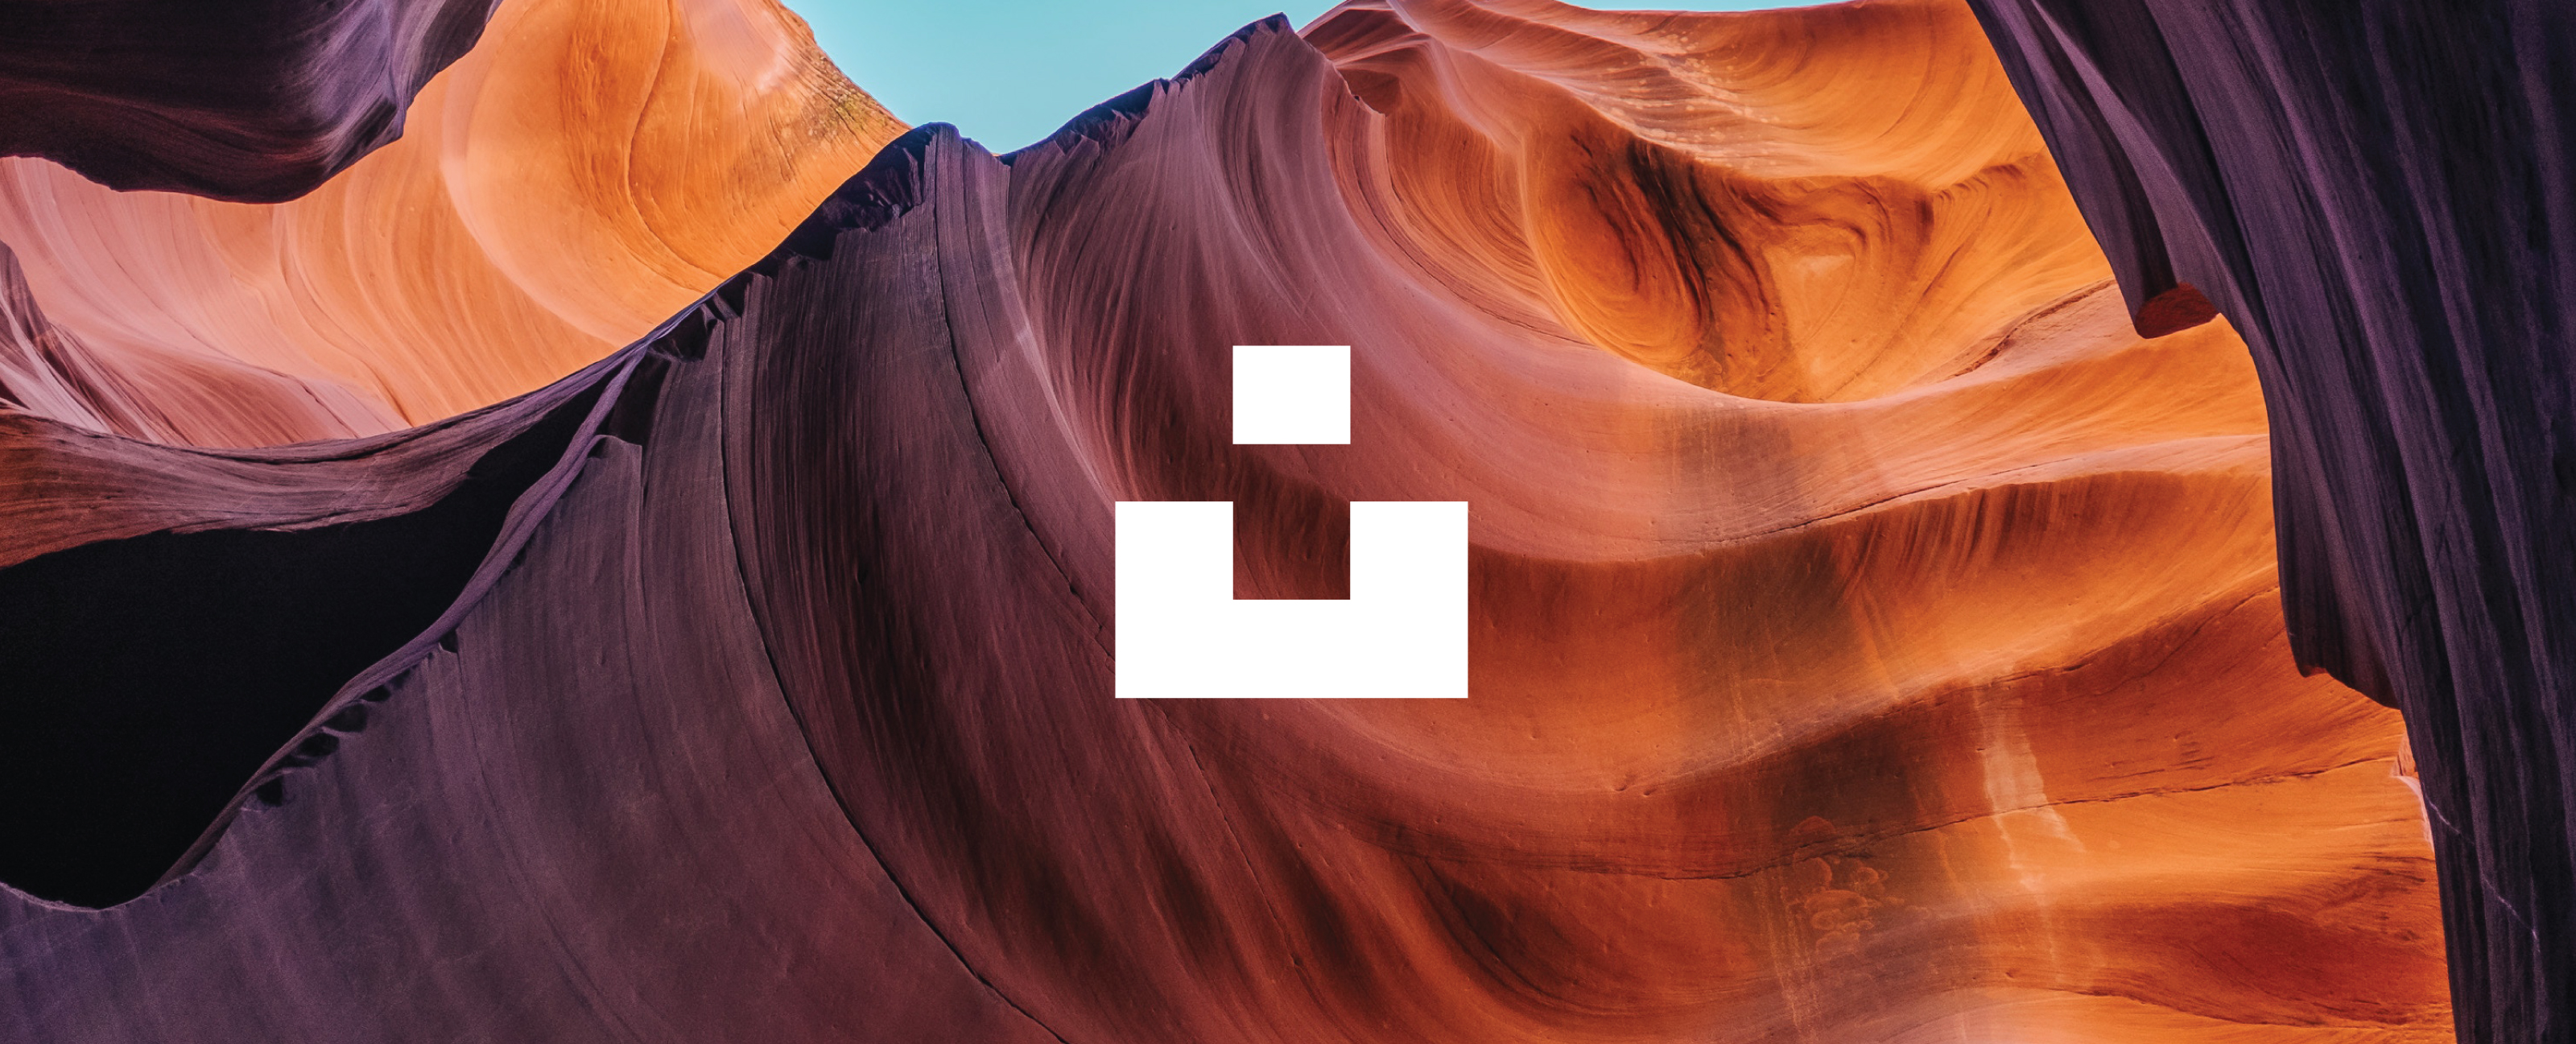 Unsplash_CaseStudy_Hero7